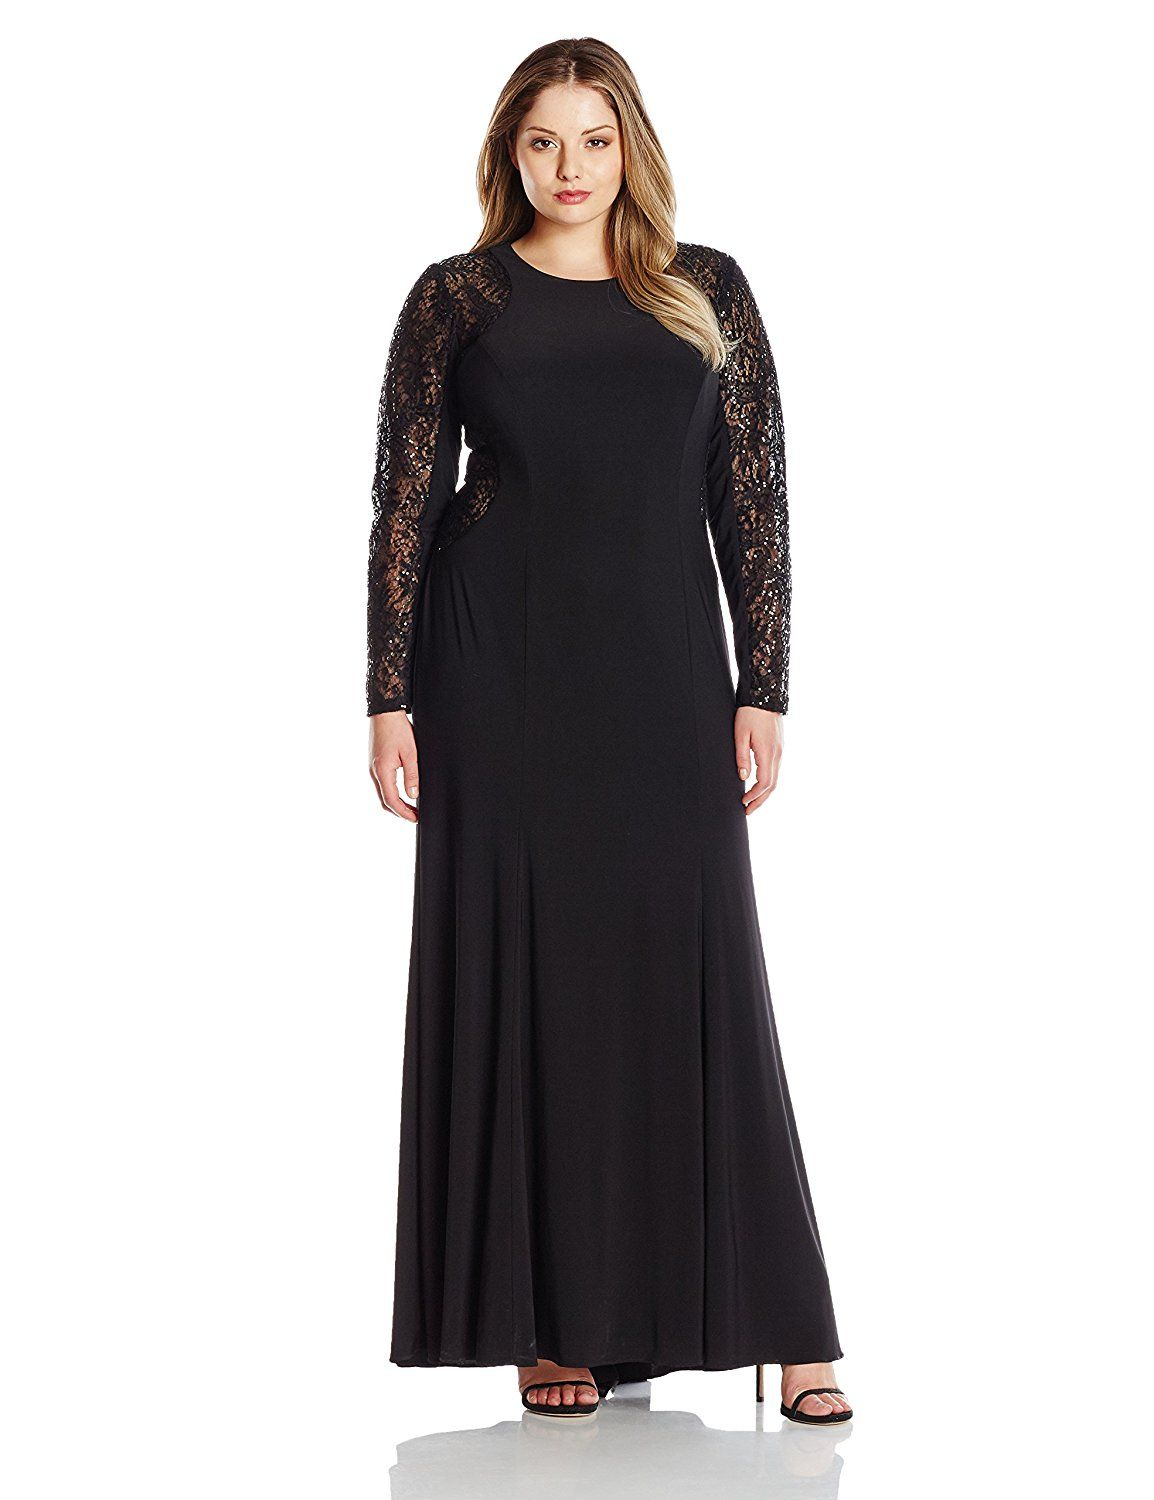 Xscape womenus plussize ity dress with sequin lace longsleeves